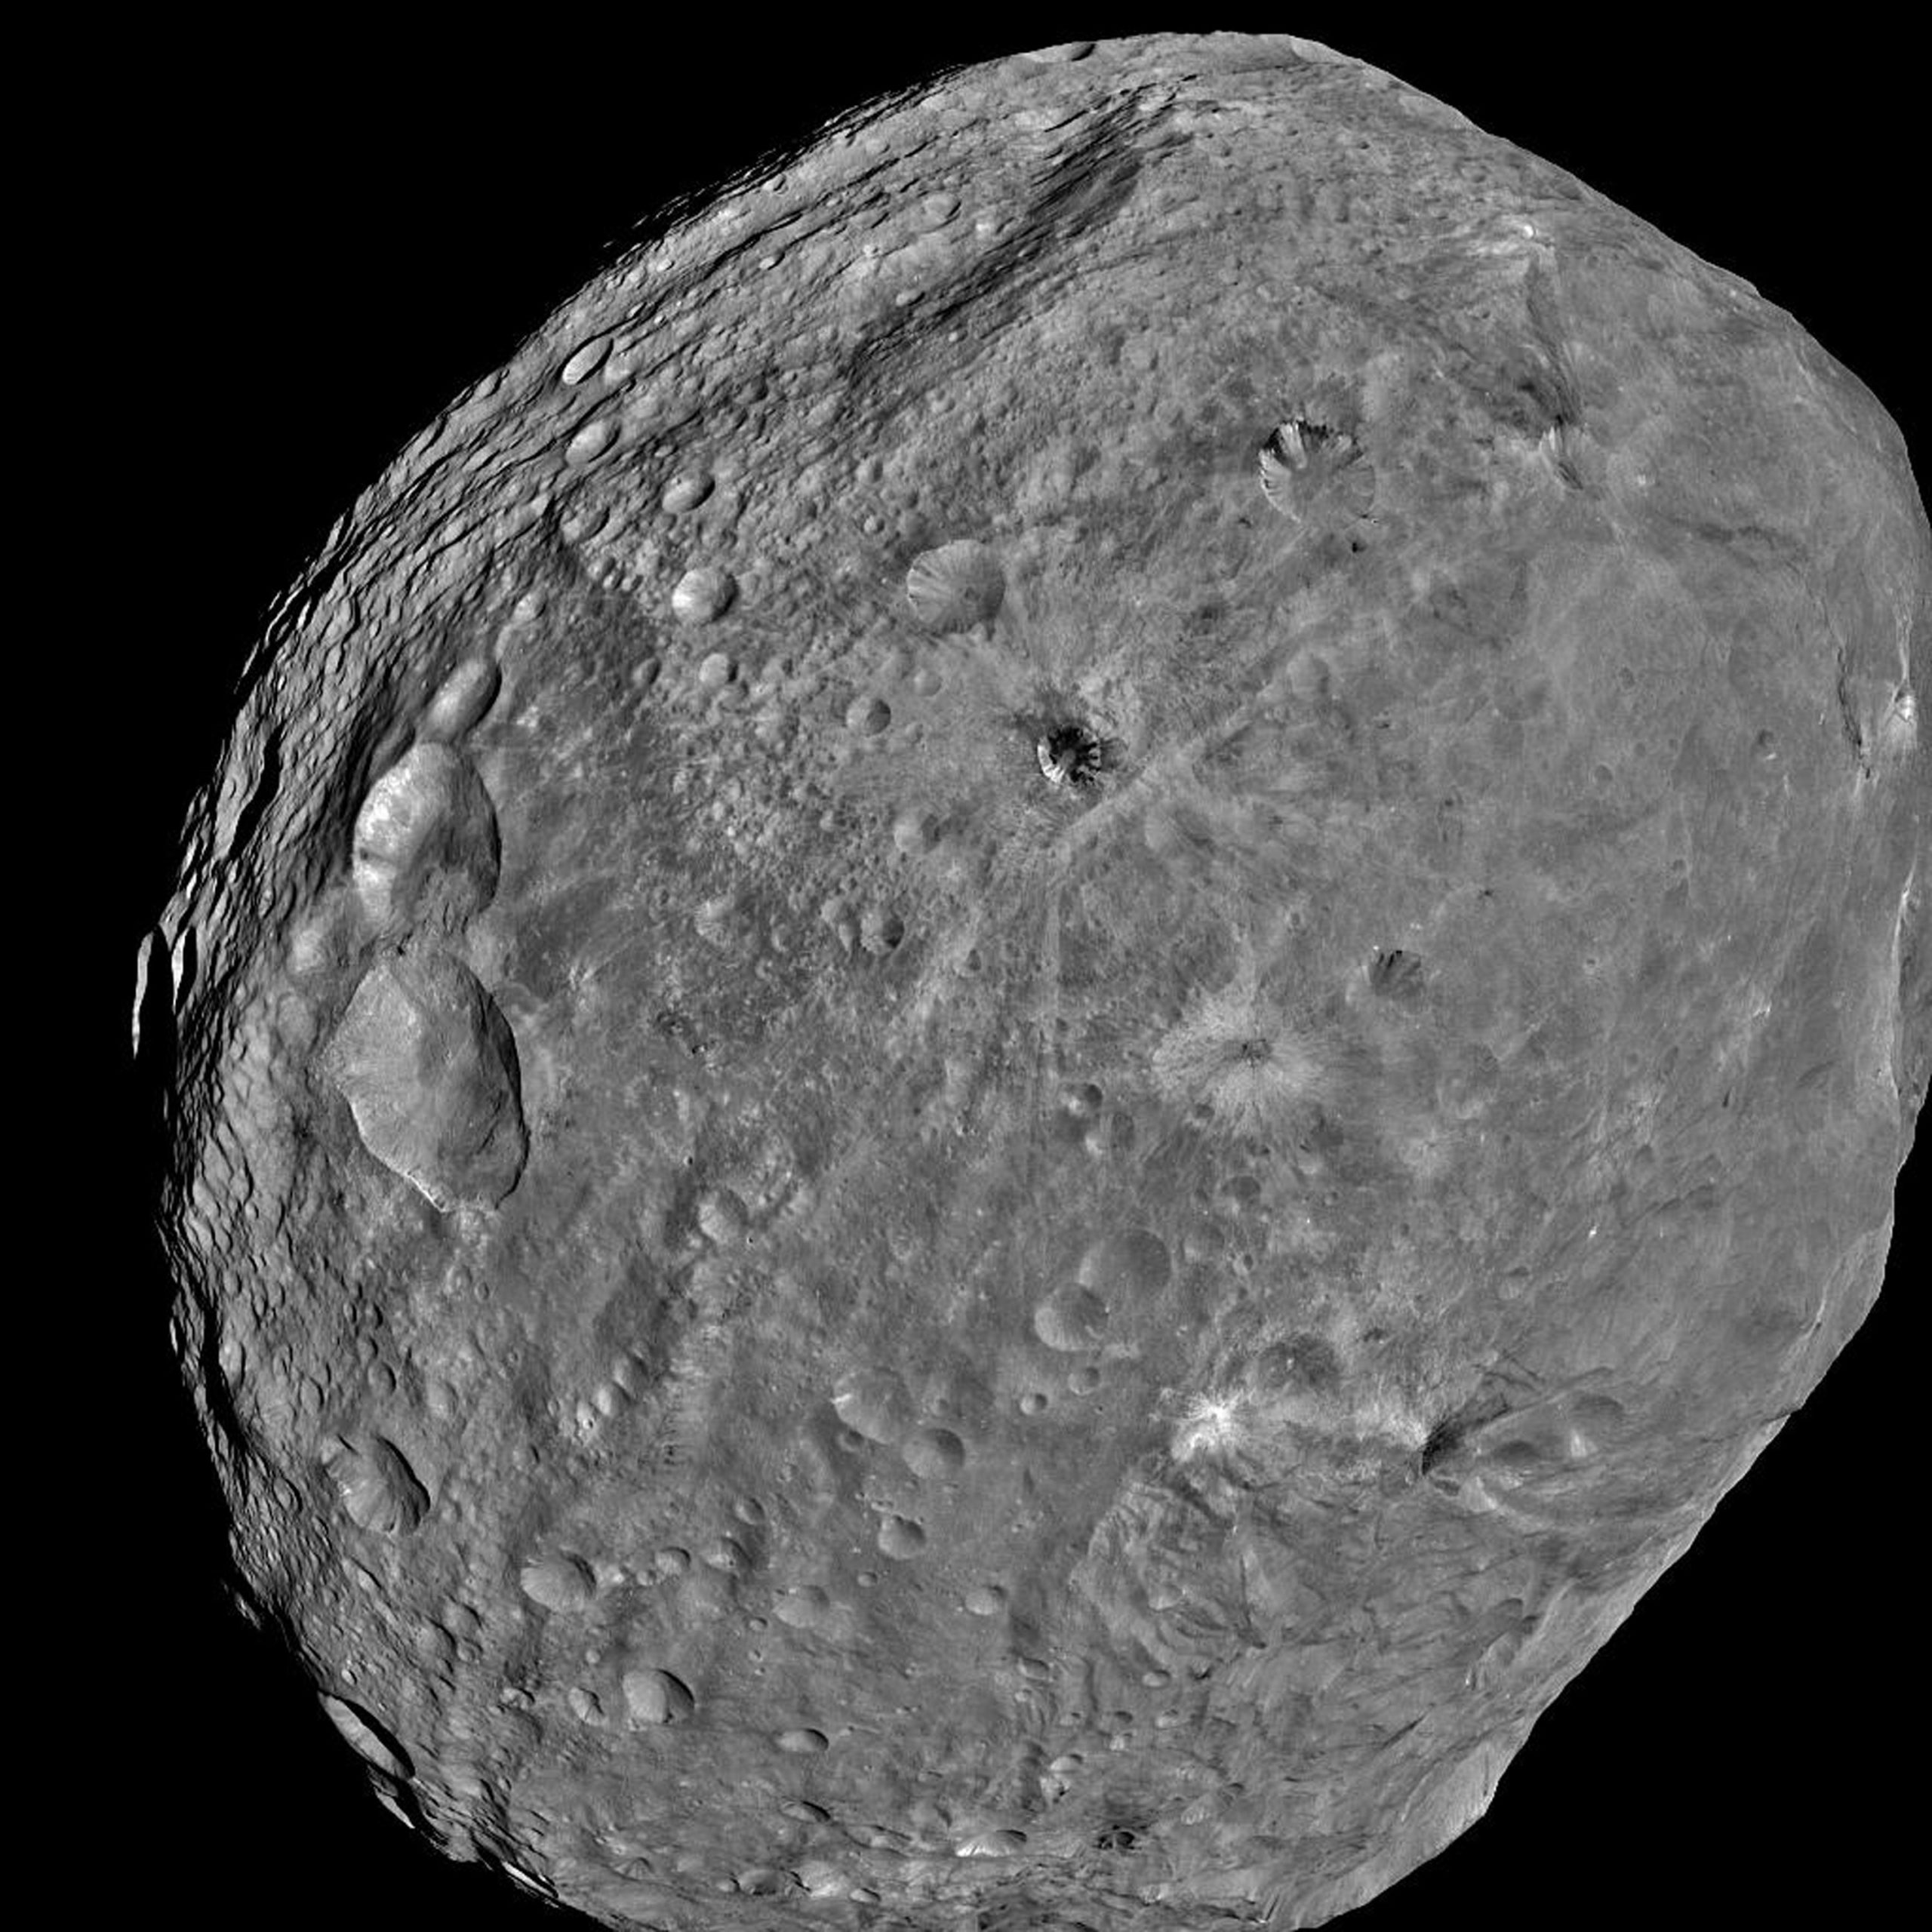 In this handout from NASA, the giant asteroid Vesta is seen in an image taken from the NASA Dawn spacecraft about 3,200 miles above the surface July 24, 2011 in Space. (Photo by NASA/JPL-Caltec via Getty Images)